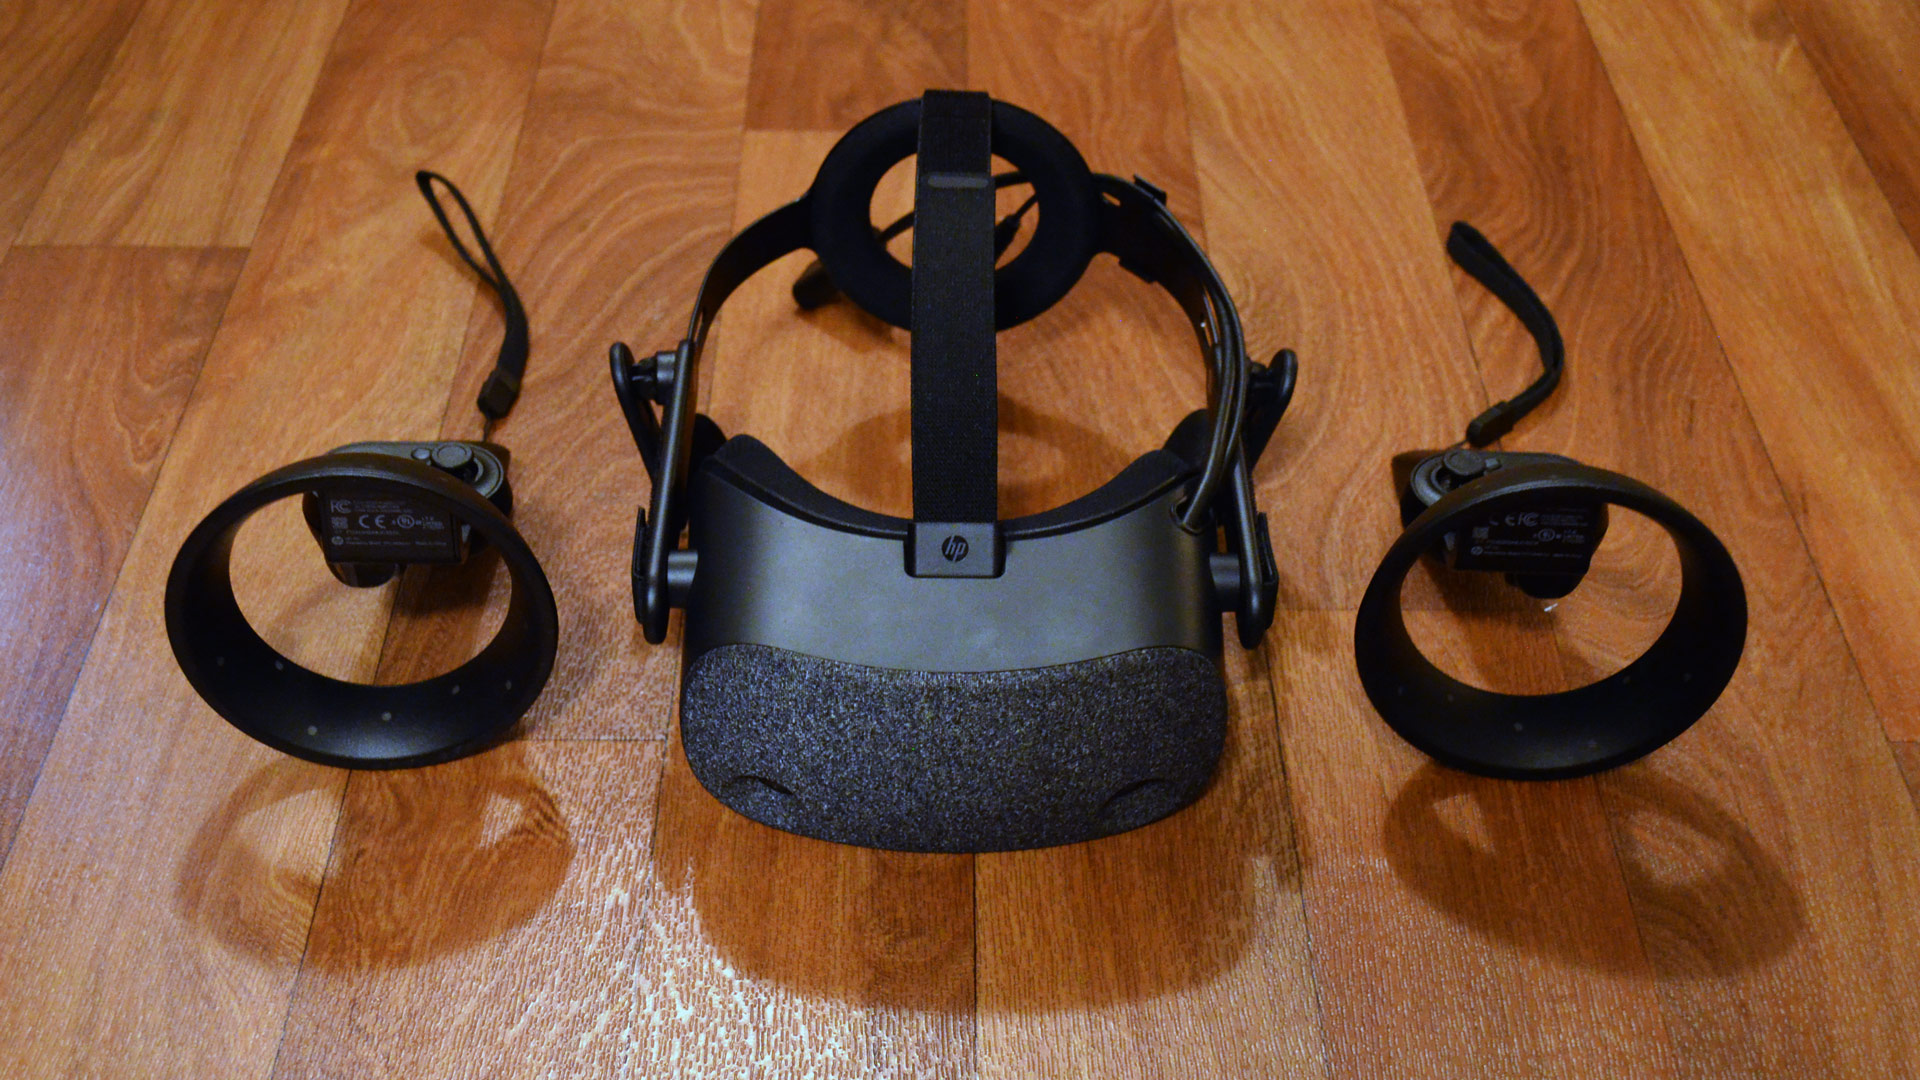 HP Reverb Review – An Impressive Headset Stuck with Windows VR Controllers